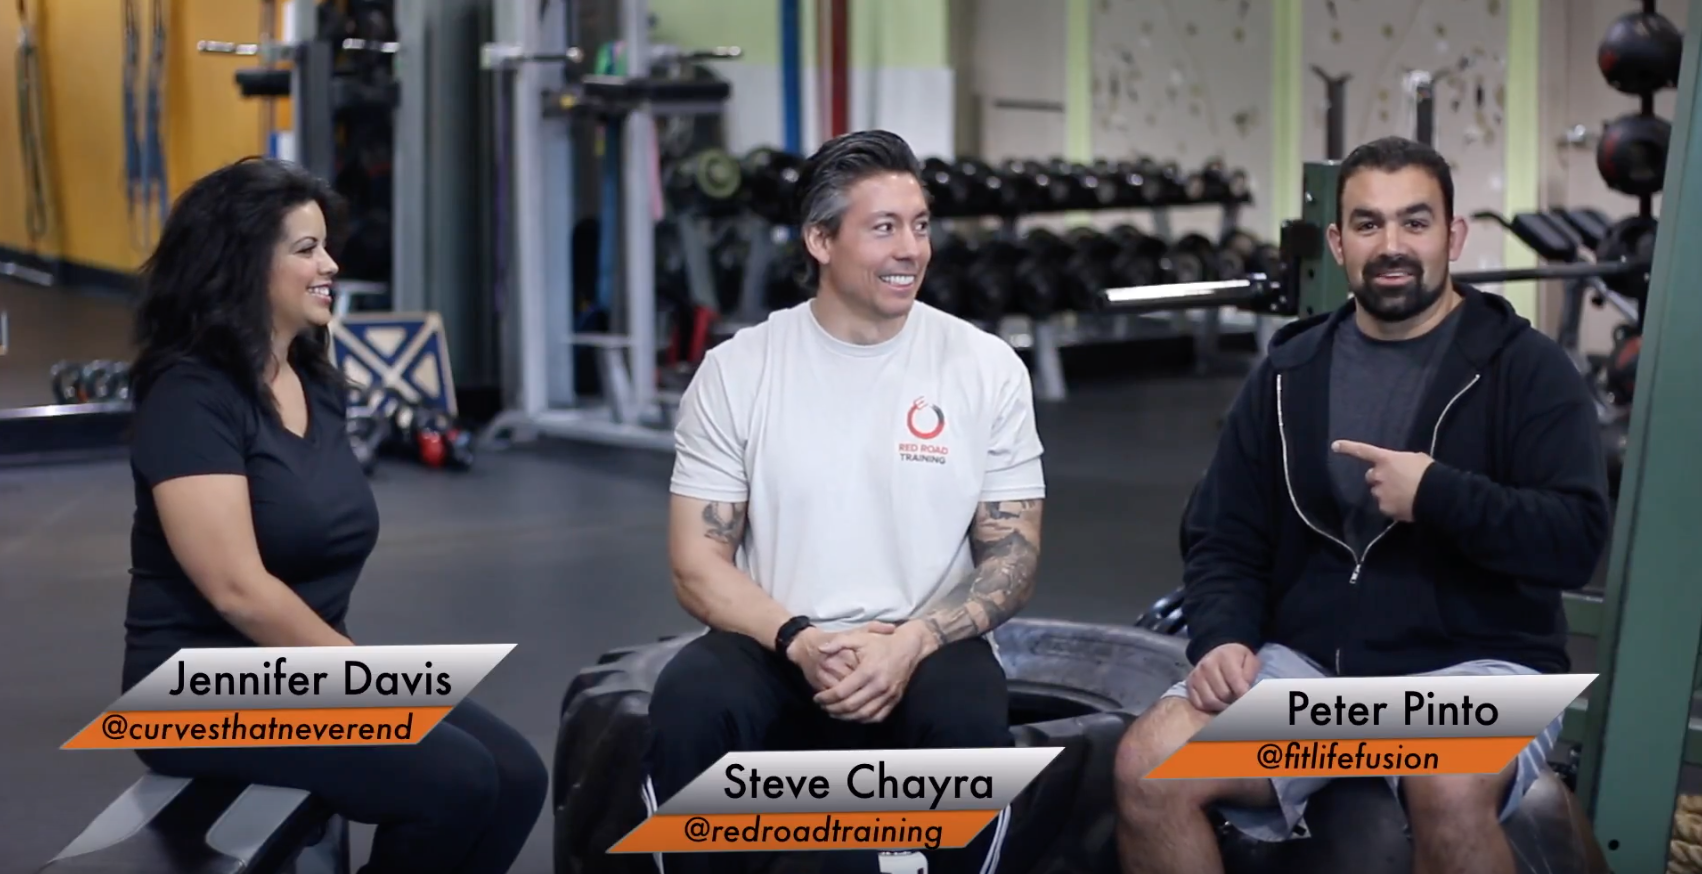 Discussing fitness philosophies with fellow Las Vegas fitness professionals.  -